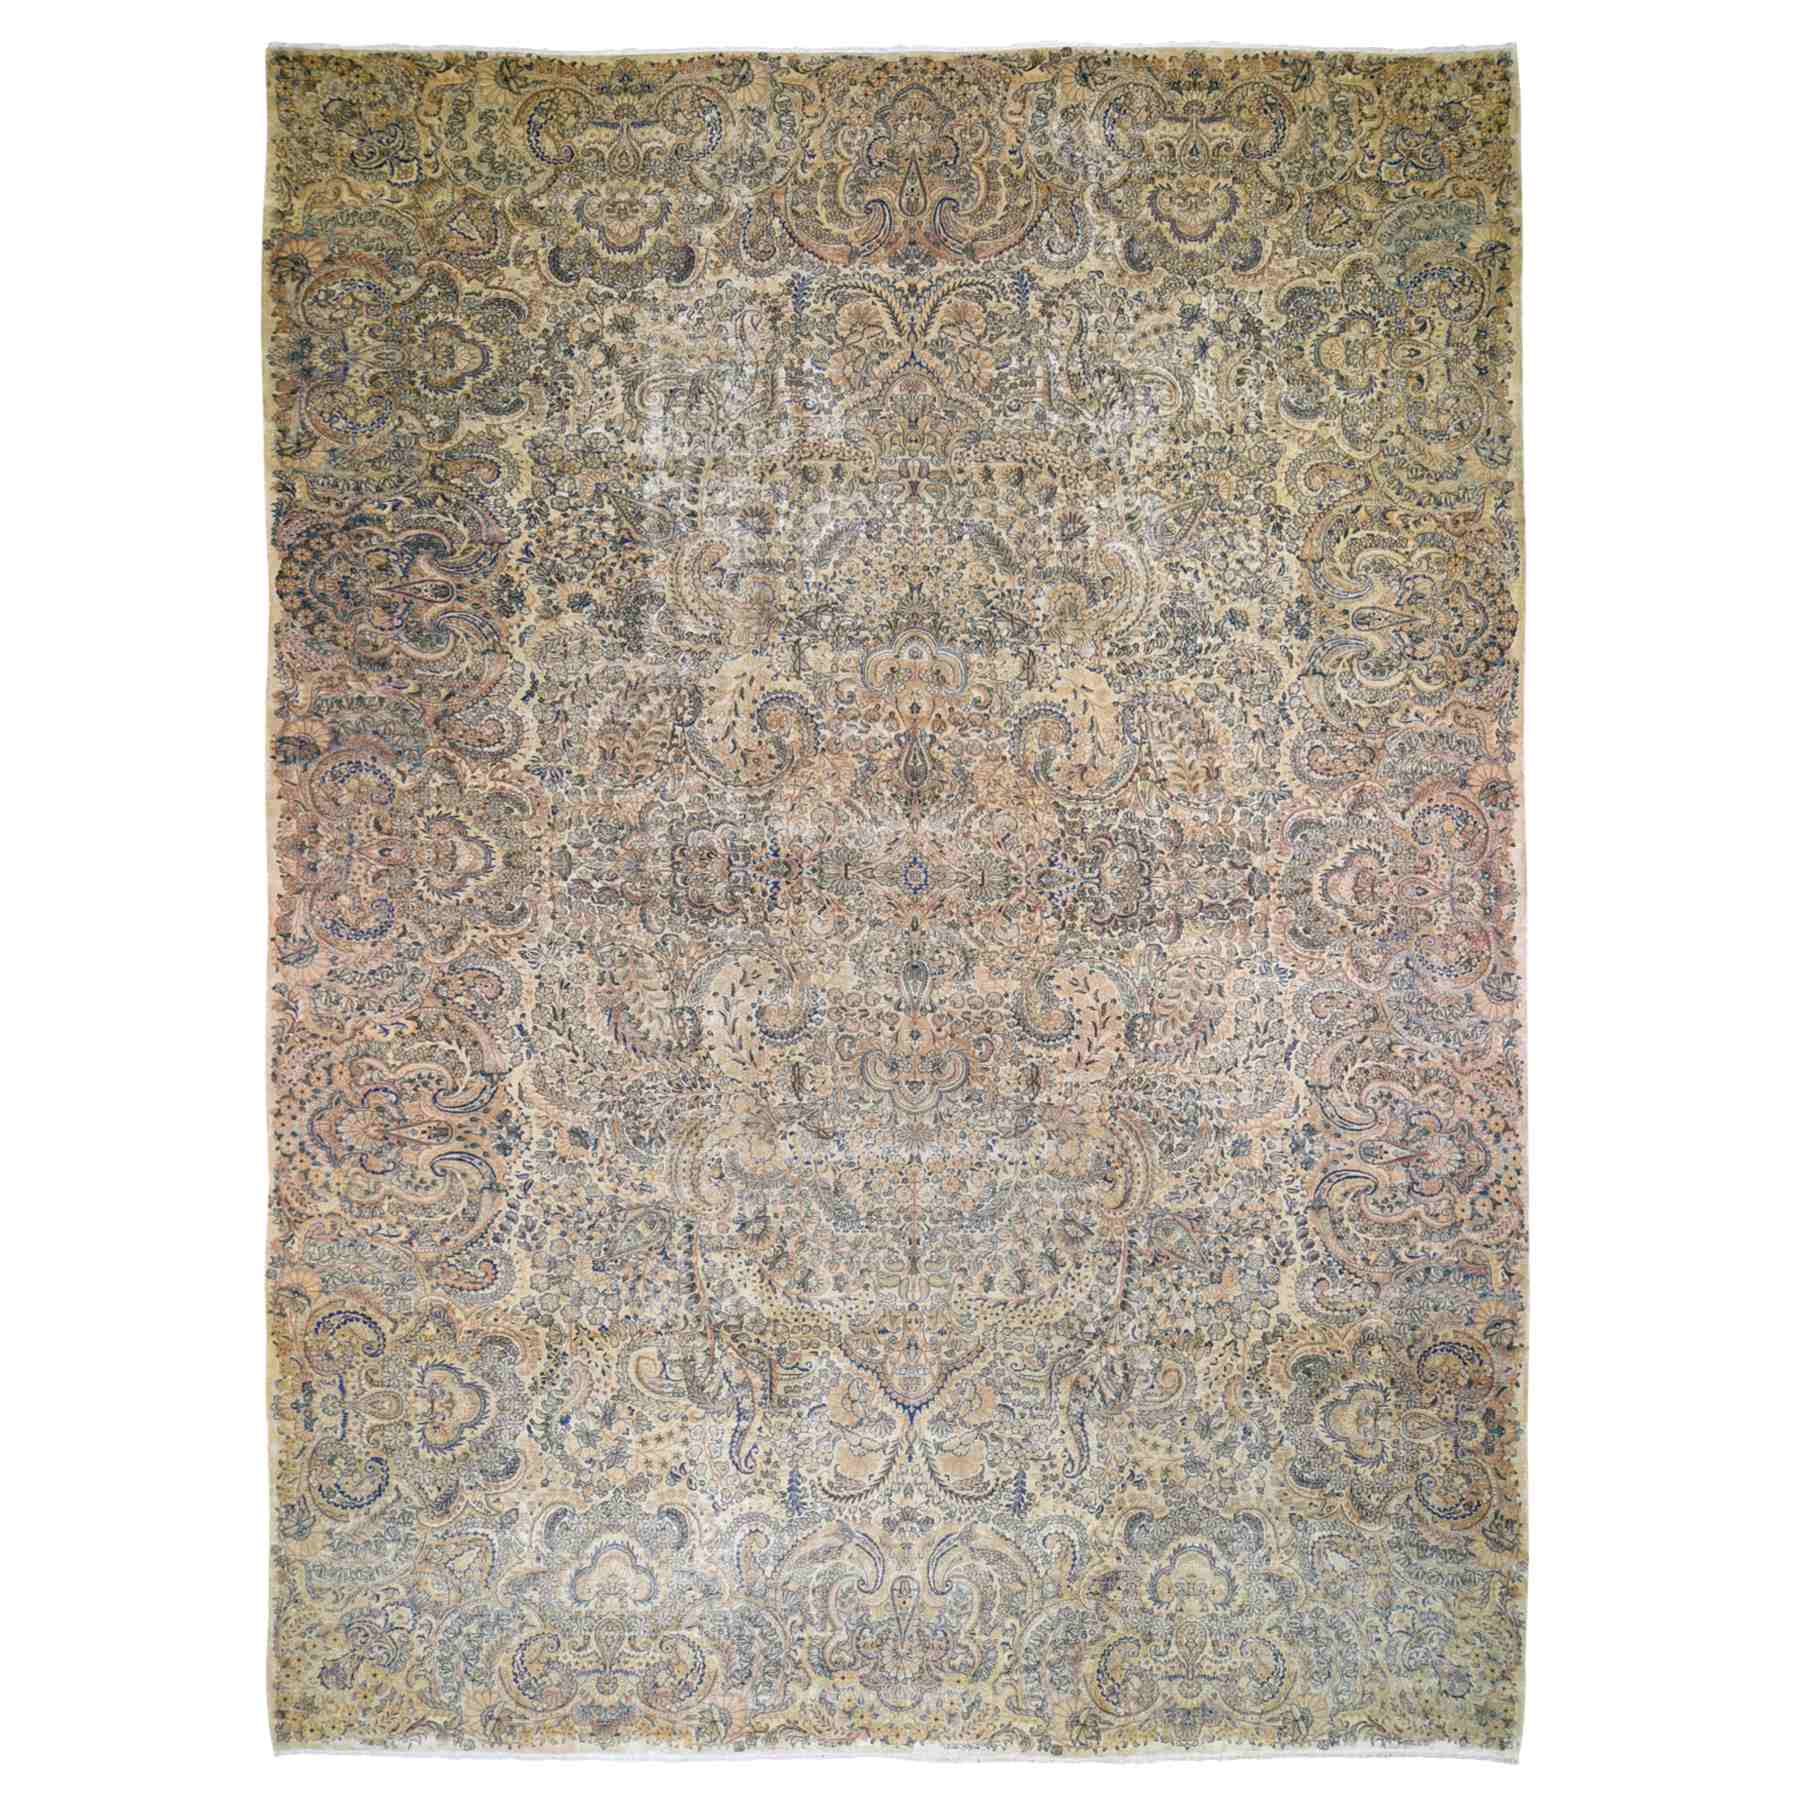 Antique Collection Hand Knotted Beige Rug No: 1118568